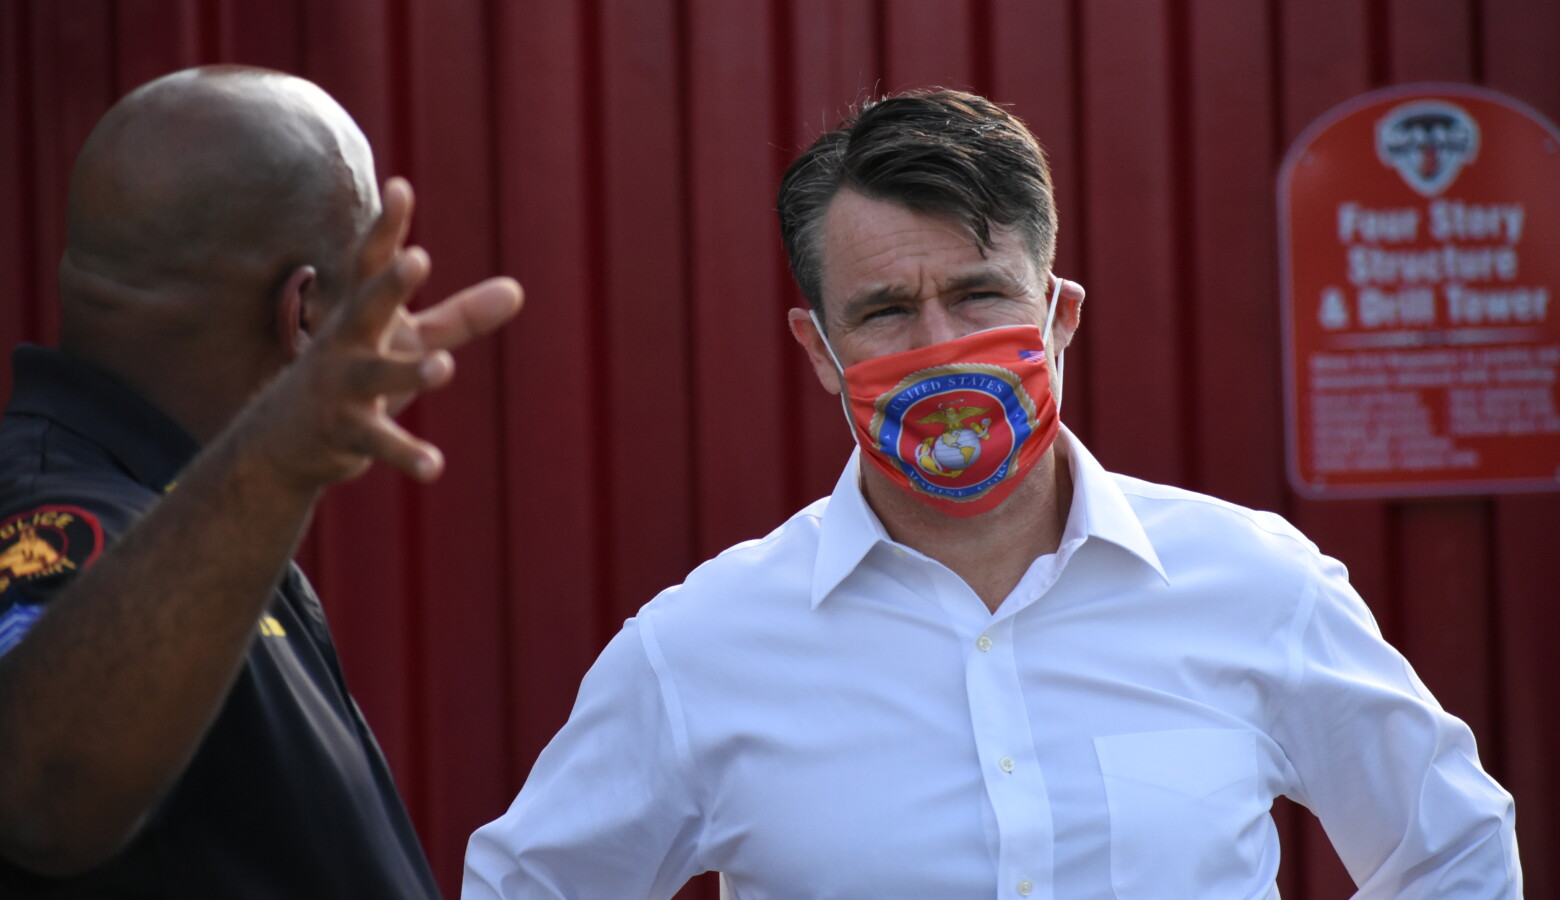 U.S. Sen. Todd Young (R-Ind.) says some of his priorities for the next federal relief bill include more support for the country's hardest-hit businesses, telehealth and child care. (Justin Hicks/IPB News)